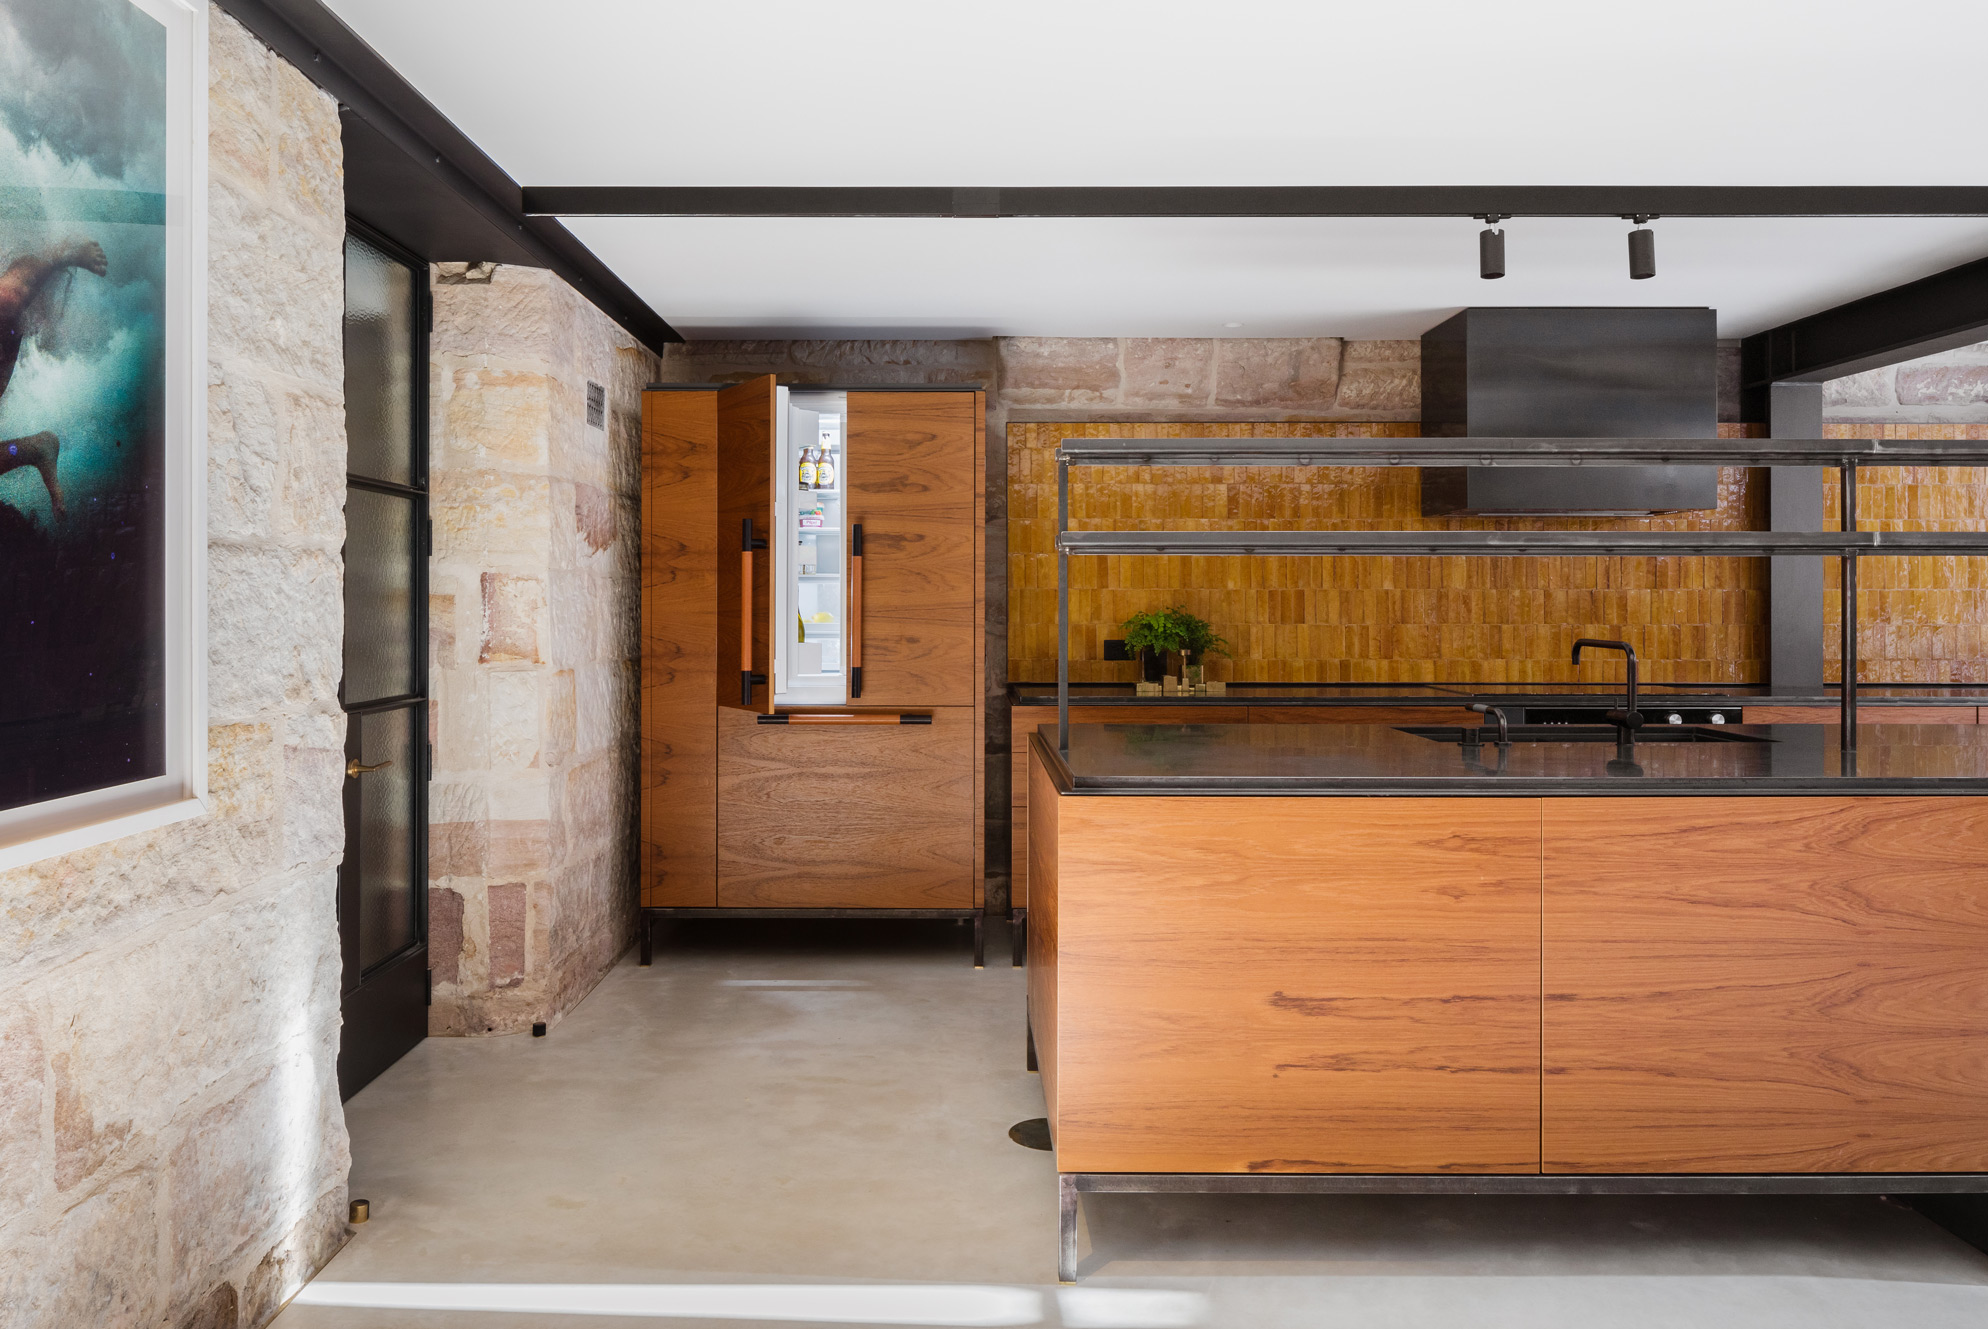 The Kitchen And Scullery Consist Of Several Freestanding Pieces, Including A Kitchen Island, Bench Units And A Fridge 'block'